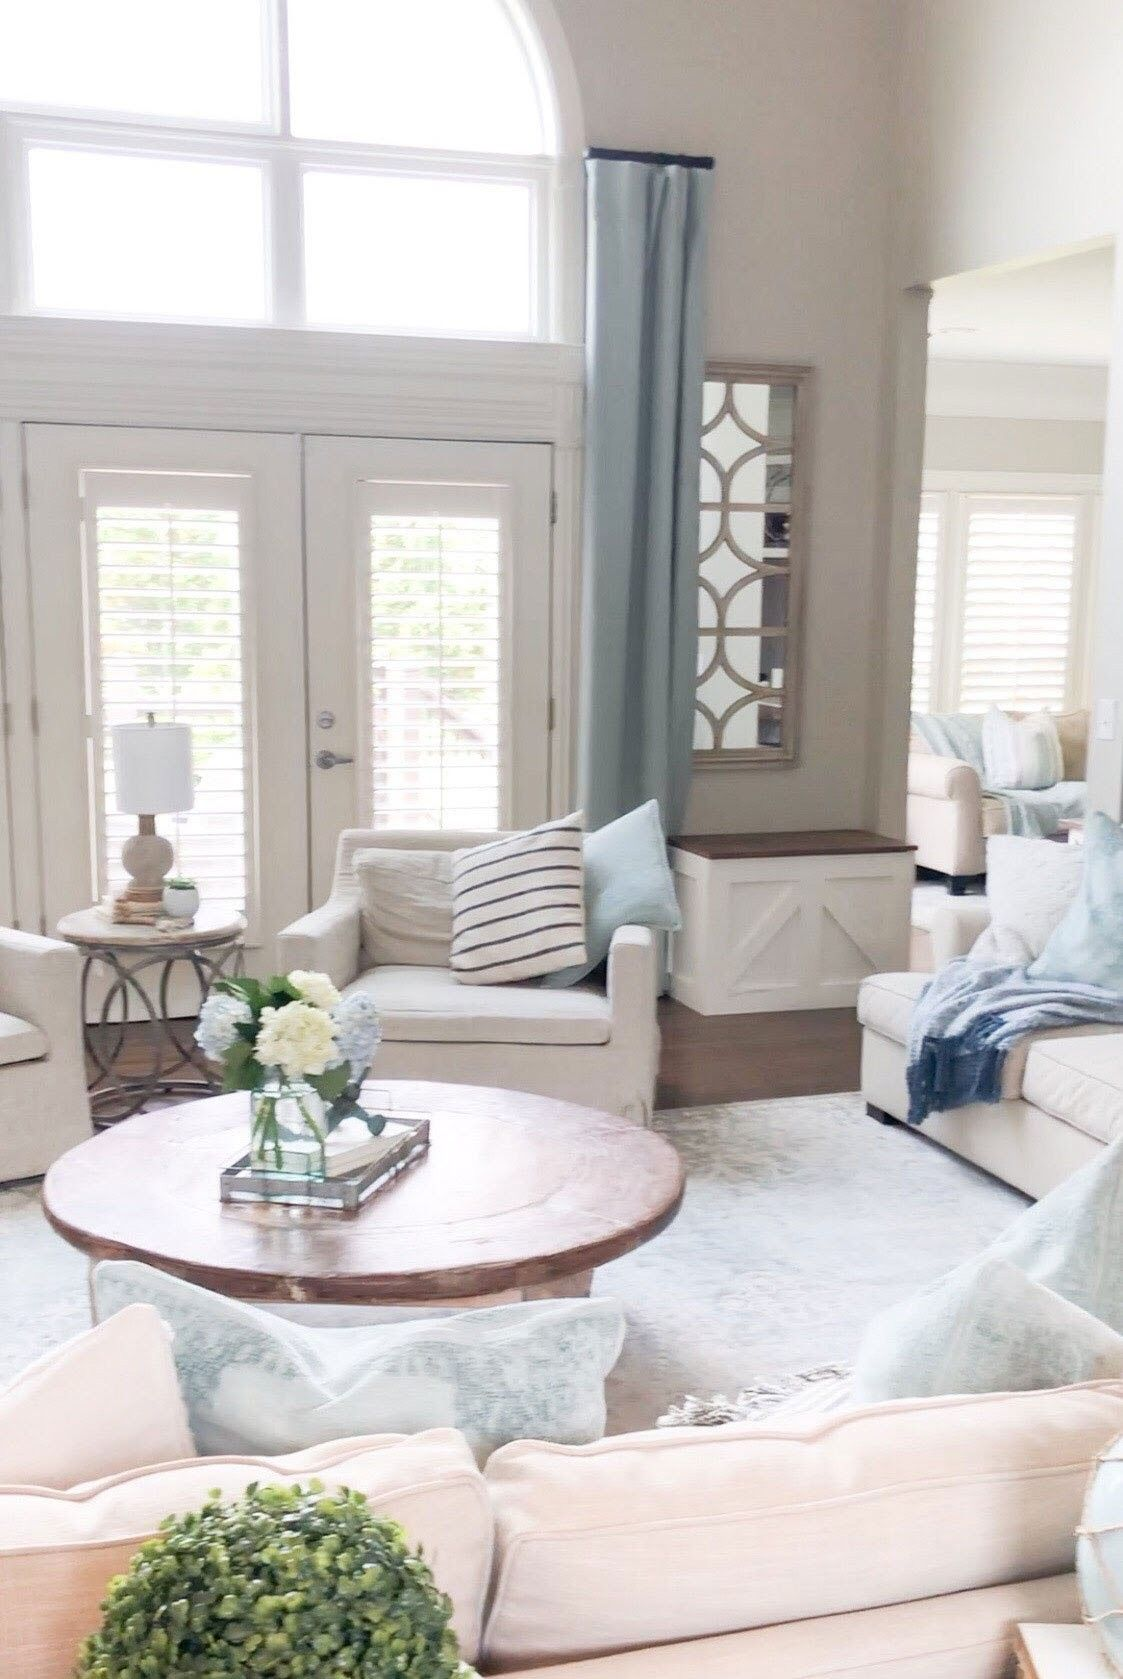 Living room | Property brothers living room, Property ...